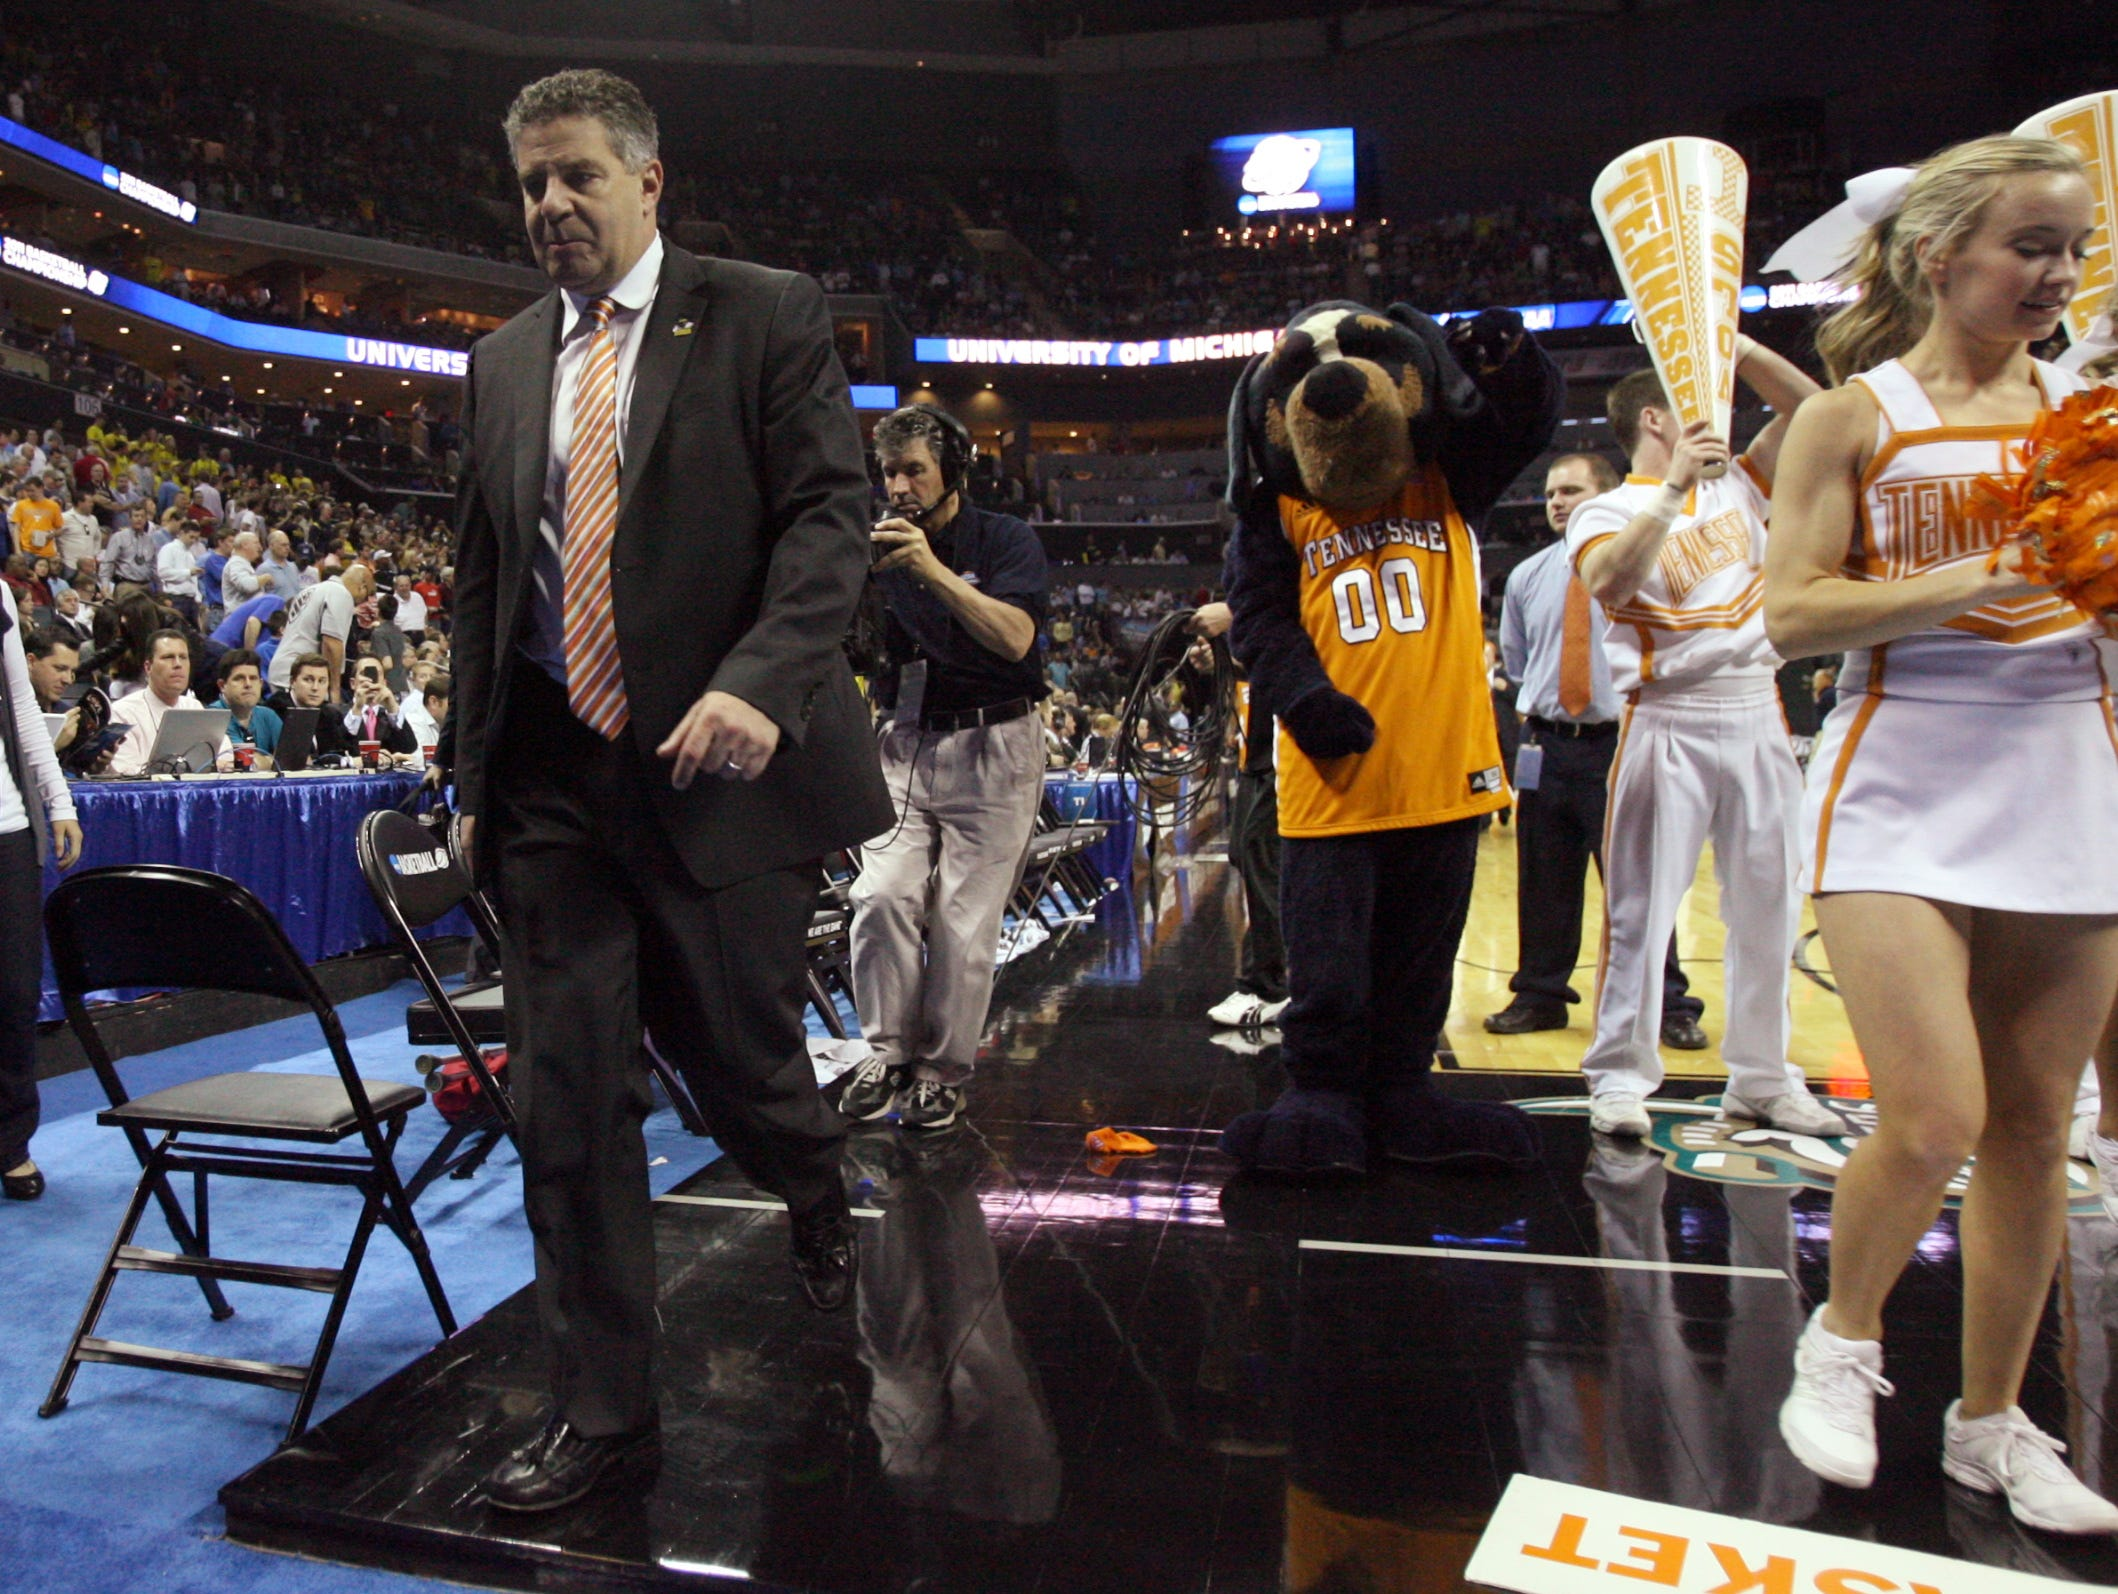 Tennessee head coach Bruce Pearl walks off the court after the Vols lost 75-45 to the Michigan Wolverines during the second round of the NCAA Tournament at Time Warner Cable Arena in Charlotte, N.C. Friday, March 18, 2011.